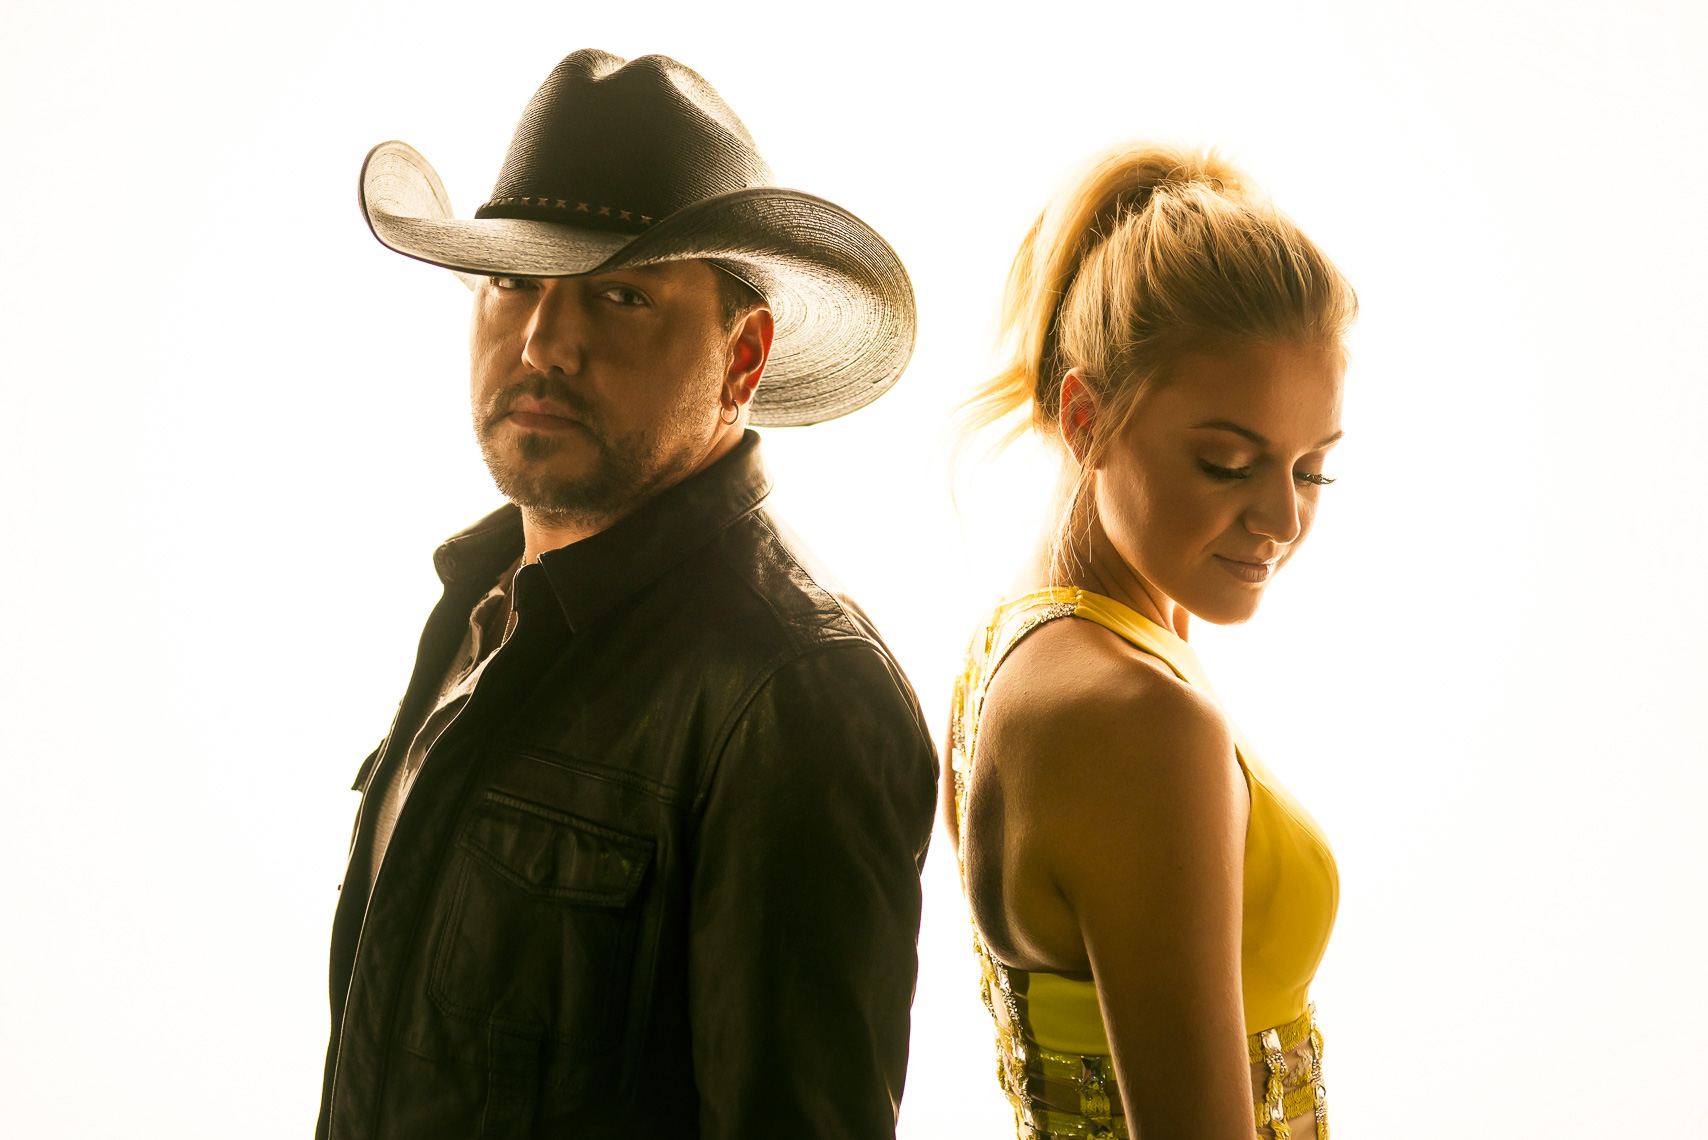 Jason Aldean and Kelsea Ballerini photographed by Nashville Photographer Jason Myers